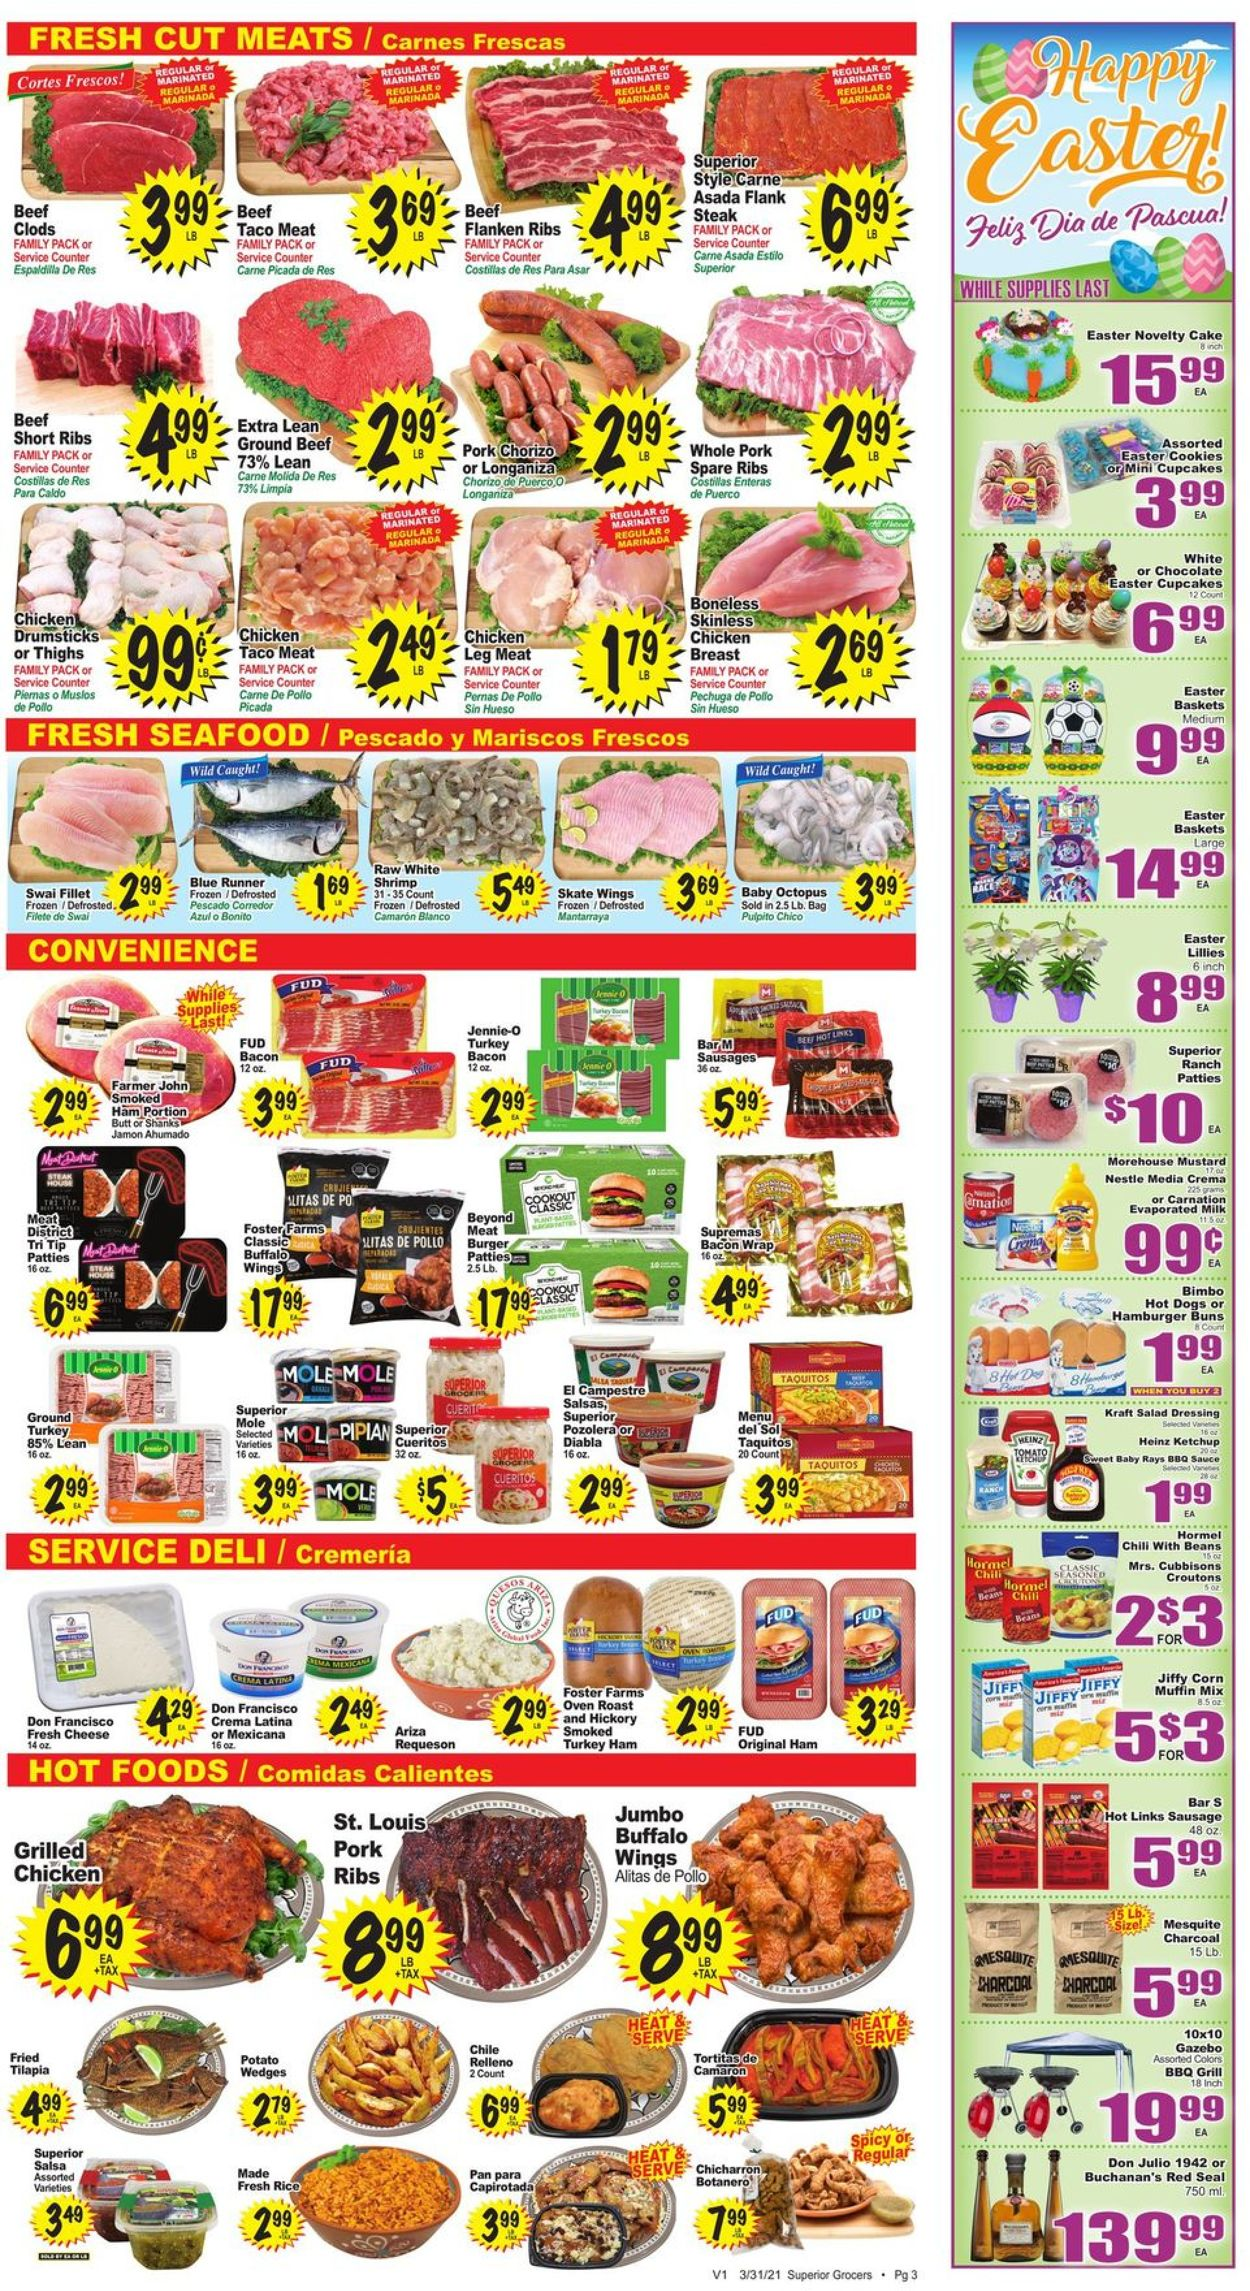 Catalogue Superior Grocers - Easter 2021 Ad from 03/31/2021